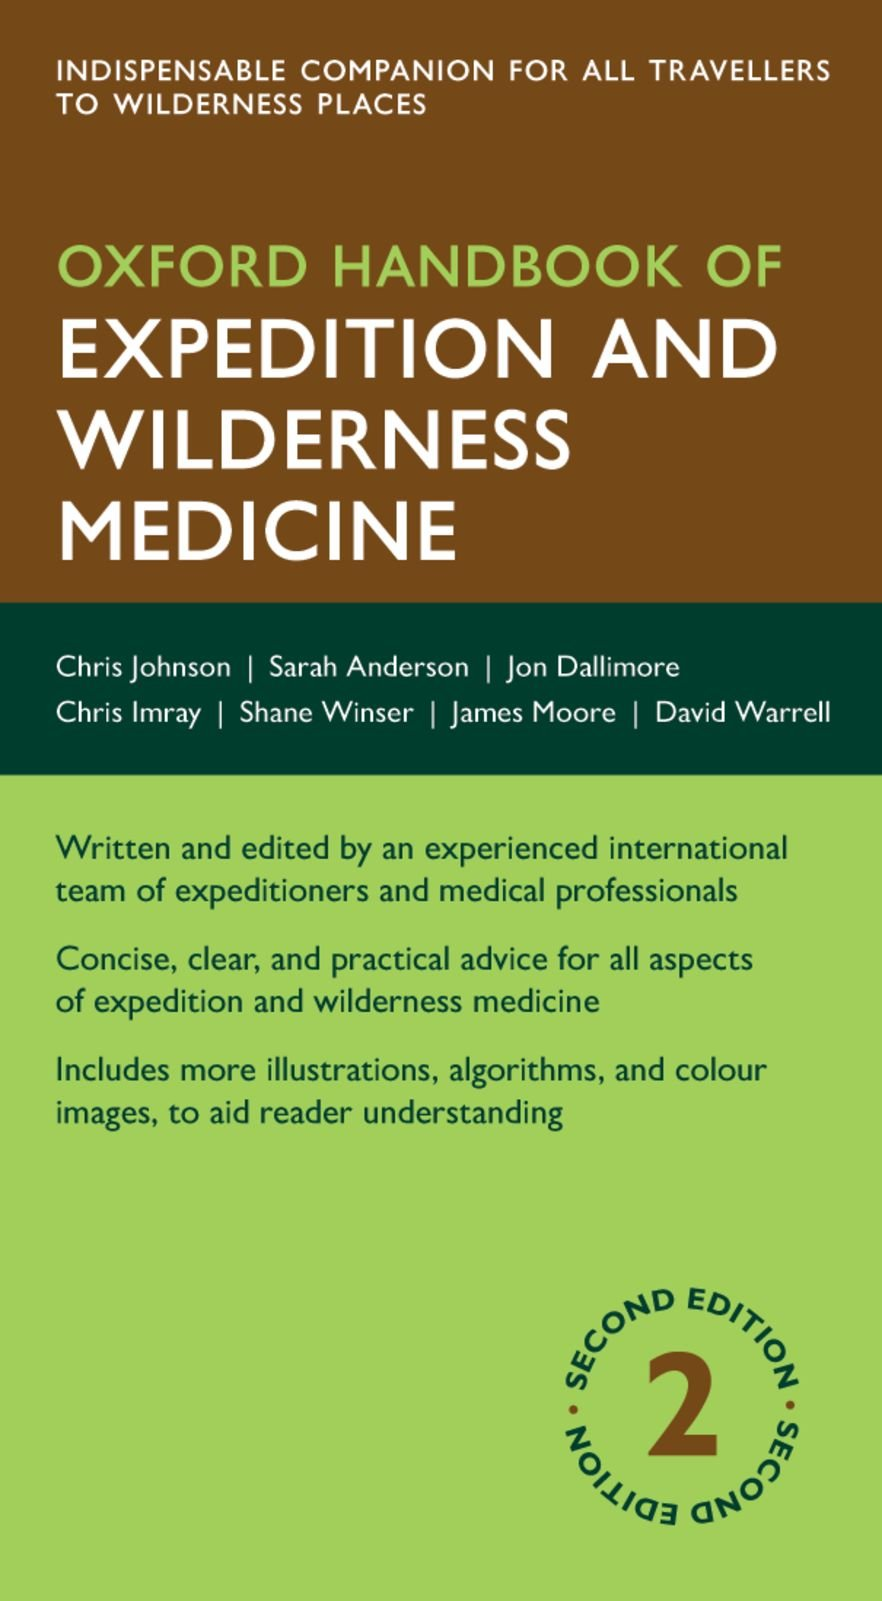 Image OfOxford Handbook Of Expedition And Wilderness Medicine